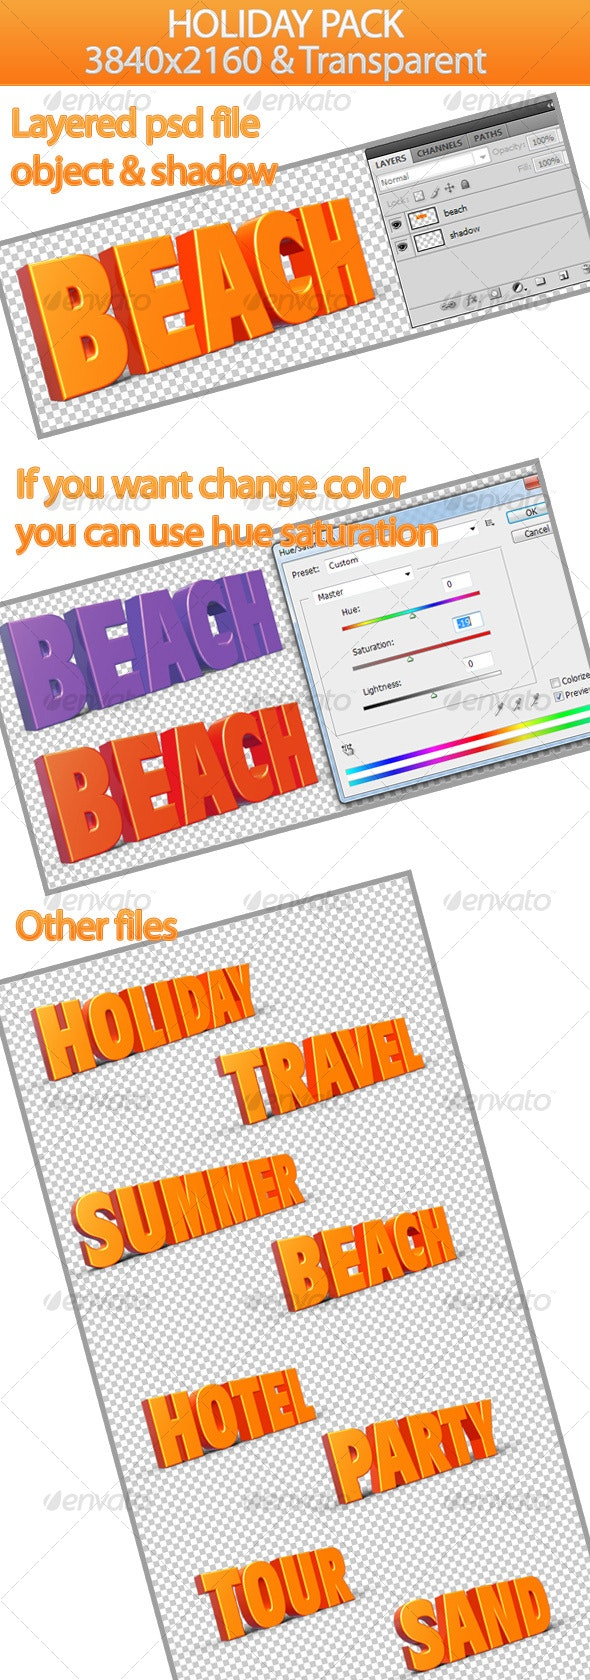 Holiday Pack - Miscellaneous 3D Renders